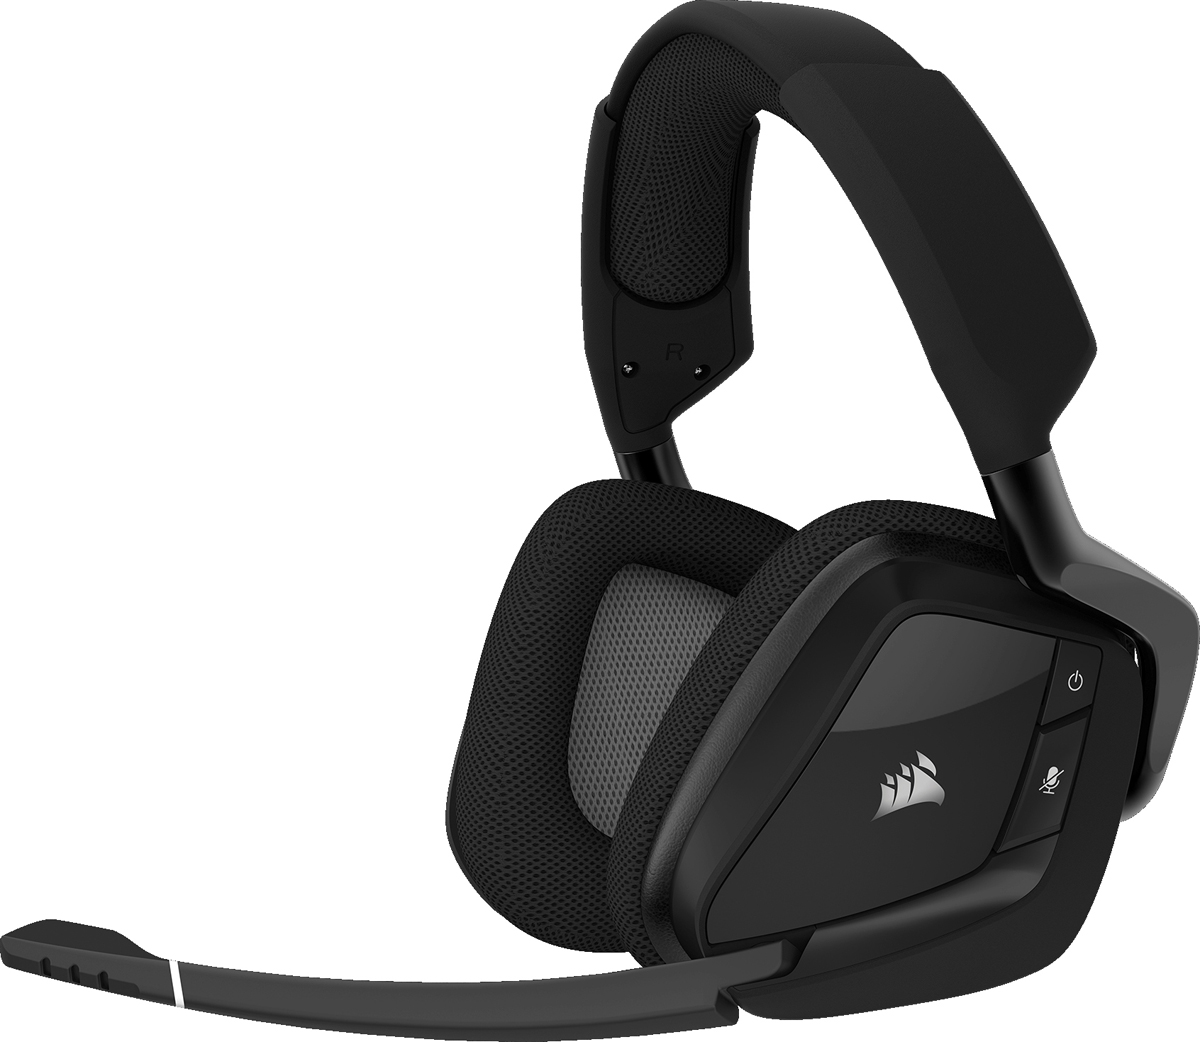 Corsair Gaming Void Pro RGB Wireless, Carbon игровая гарнитура